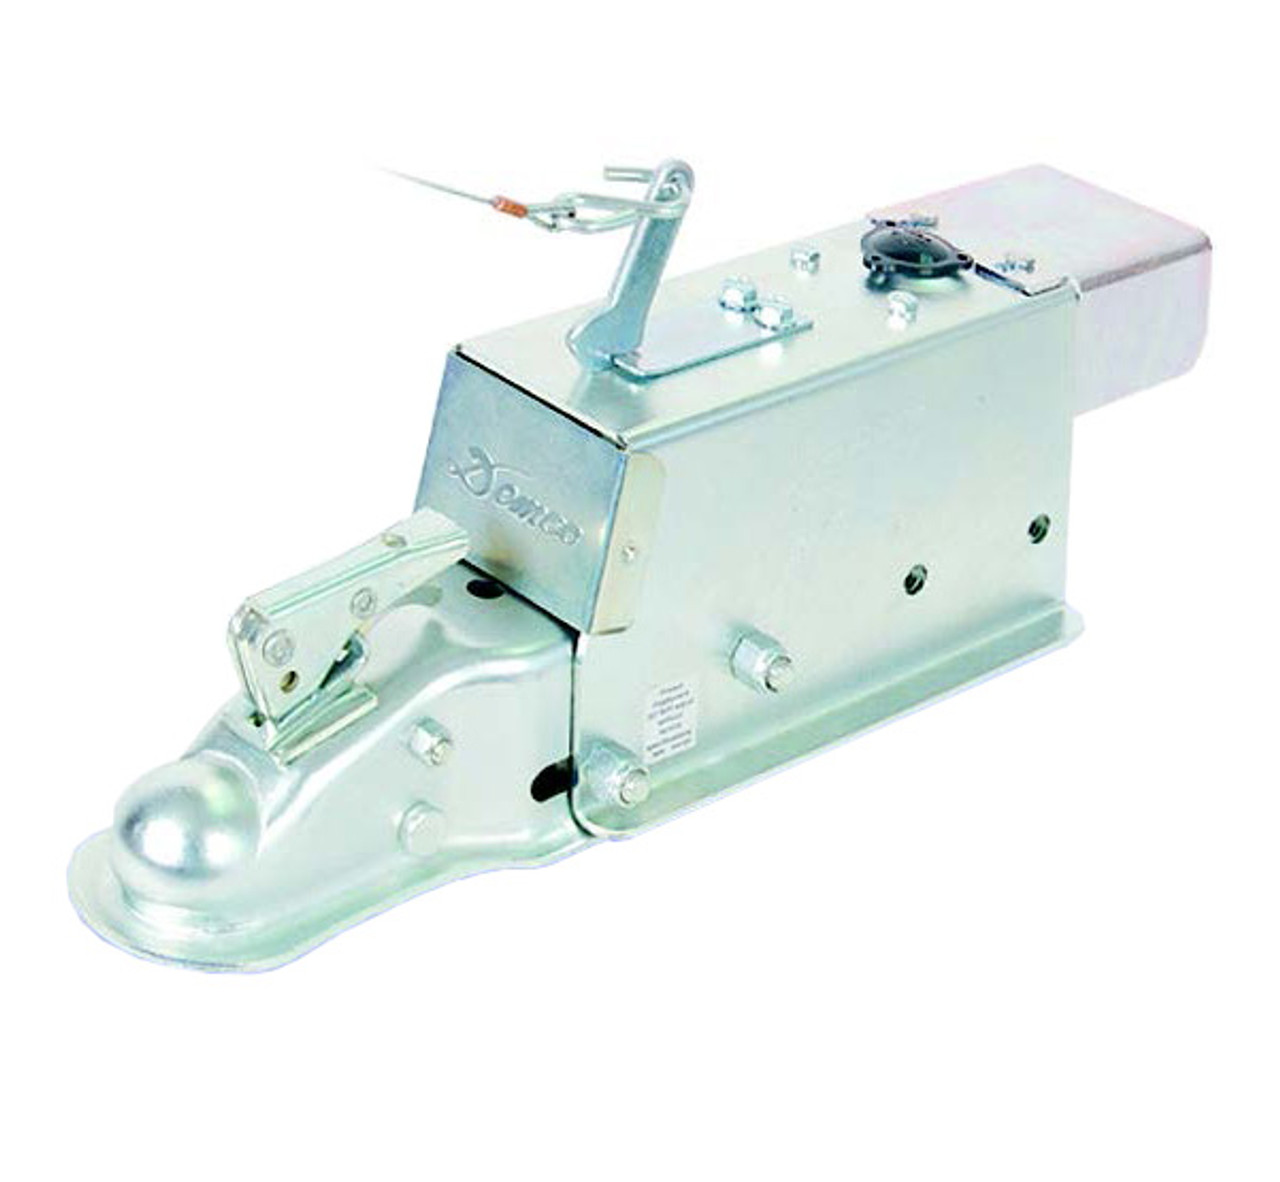 "8605101 --- Demco Hydraulic Brake Actuator for Disc Brakes with 2"" Coupler - 6,000 lb Capacity - Model DA66B"